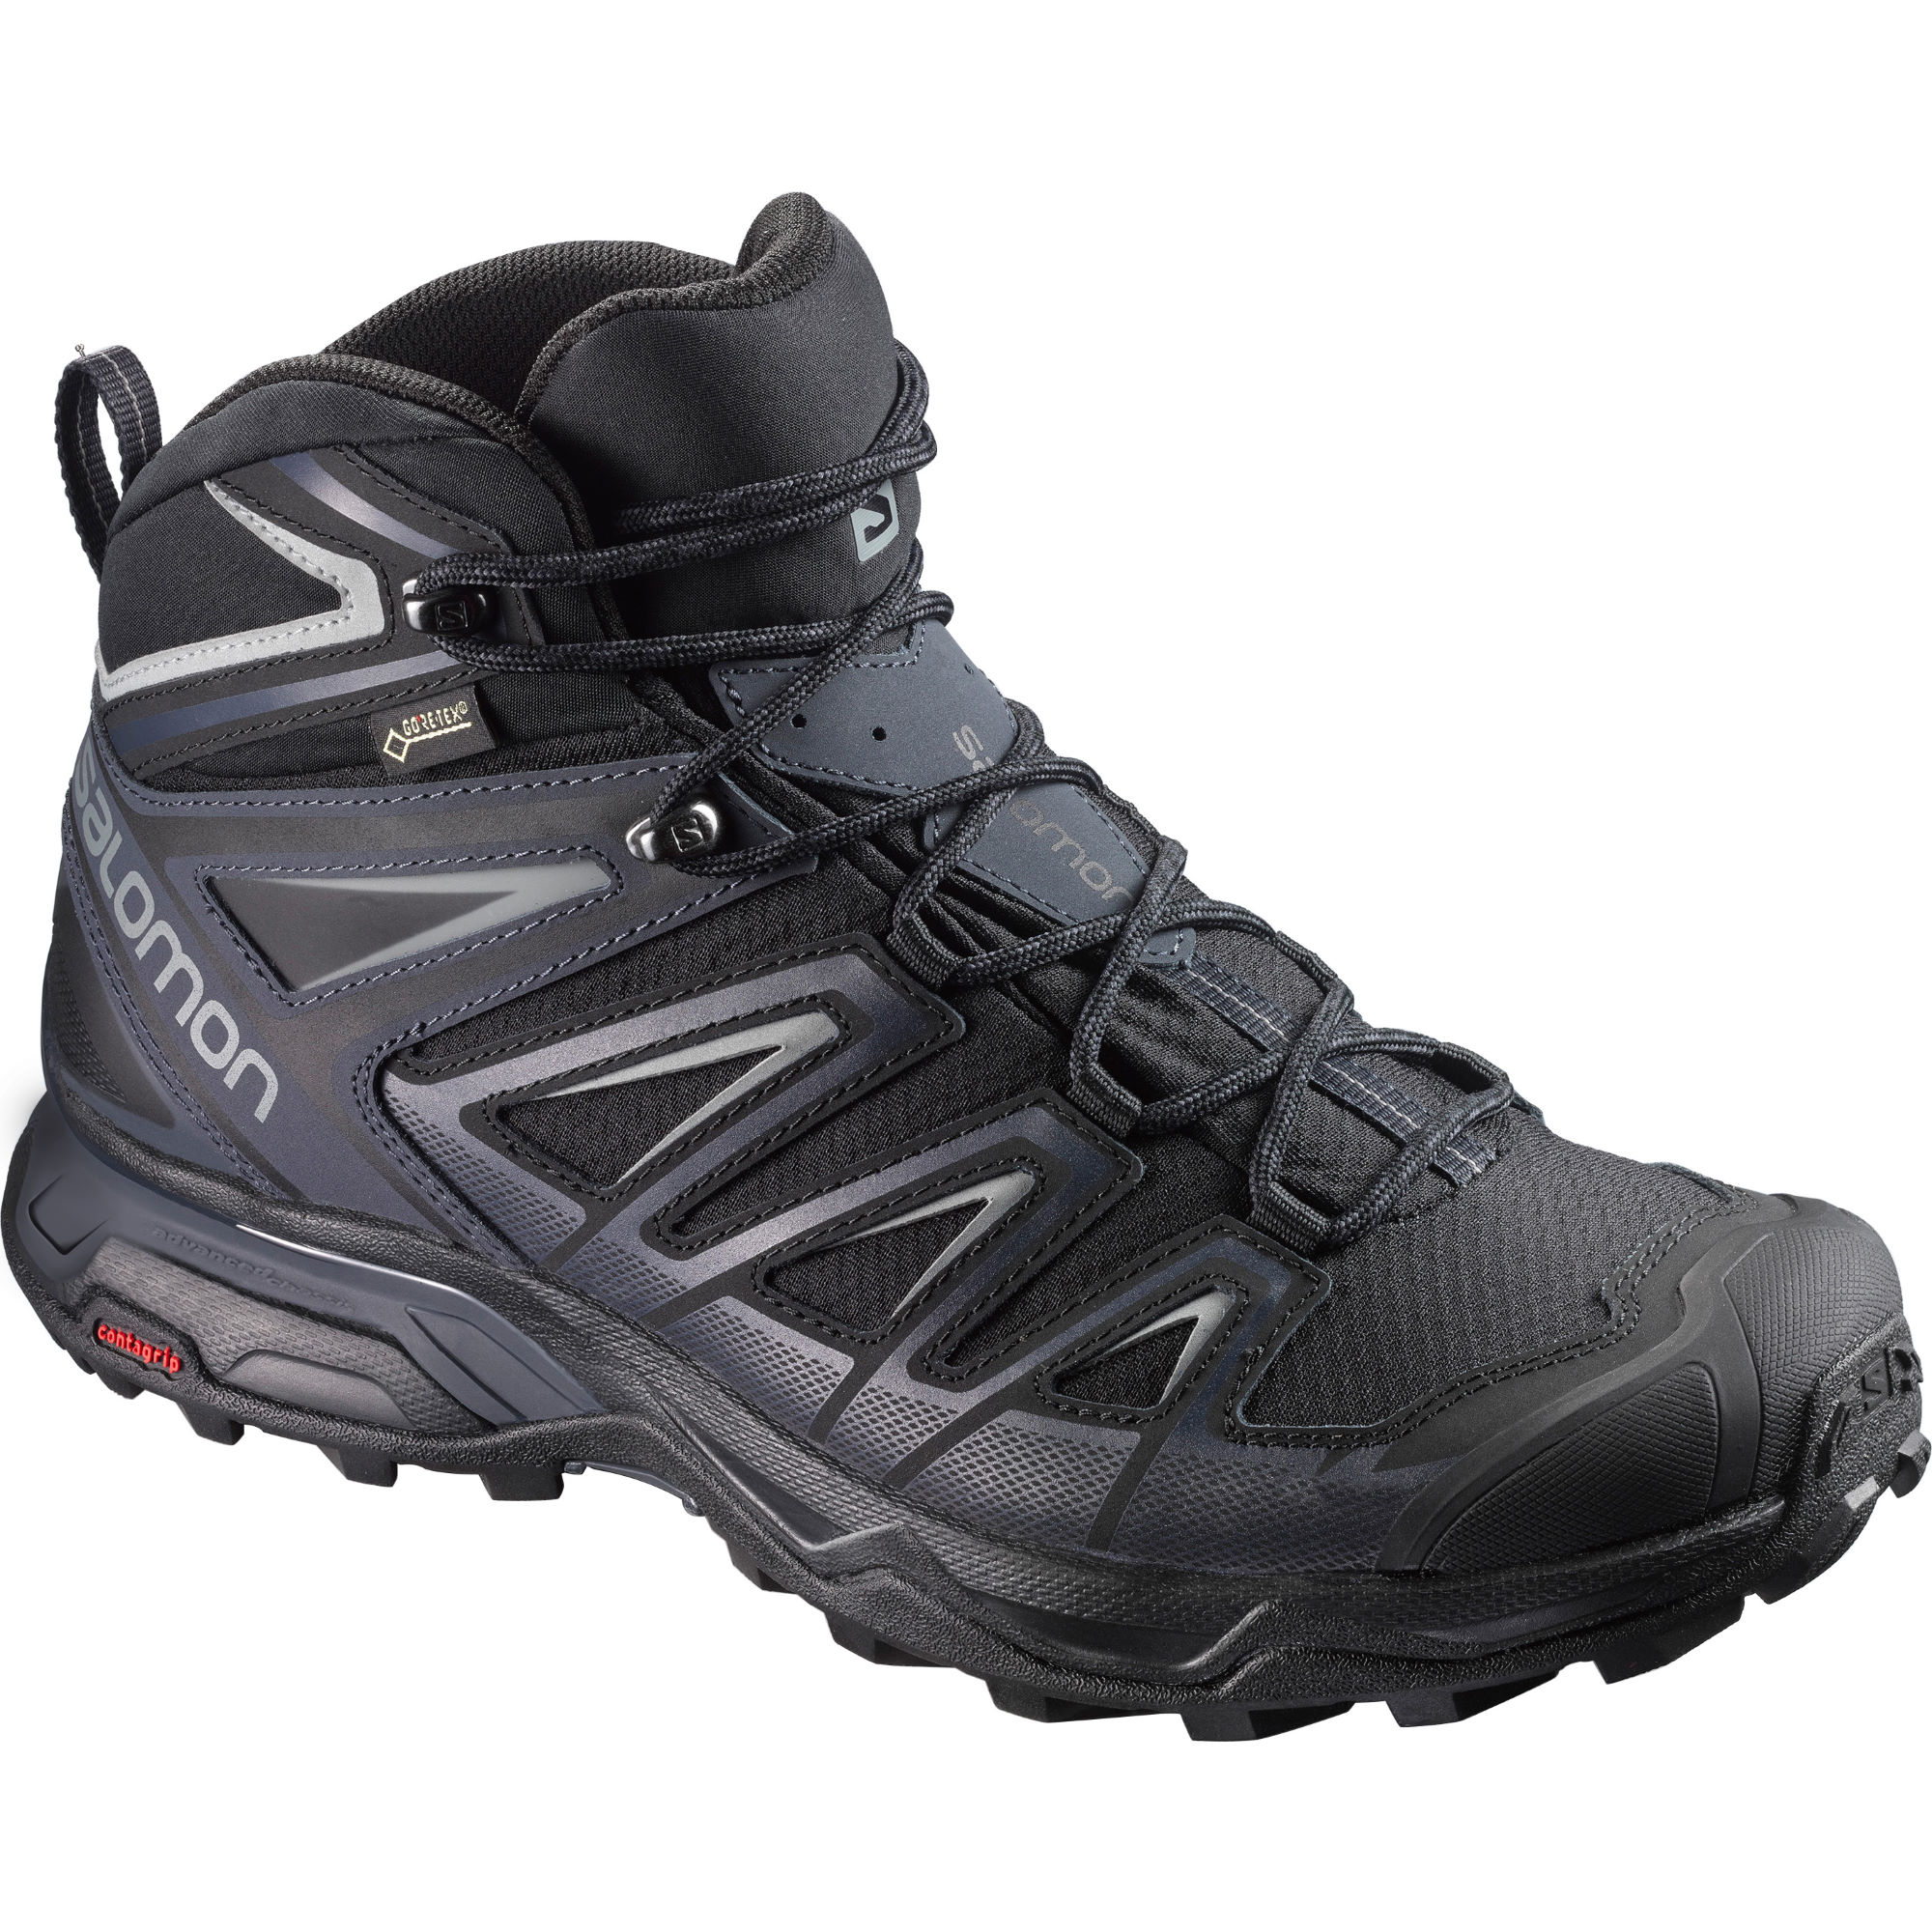 Salomon-X-Ultra-3-Mid-GTX-Shoes-Fast-Hike-Bk-India-Ink-Mo-AW17-L398674007-5.jpg